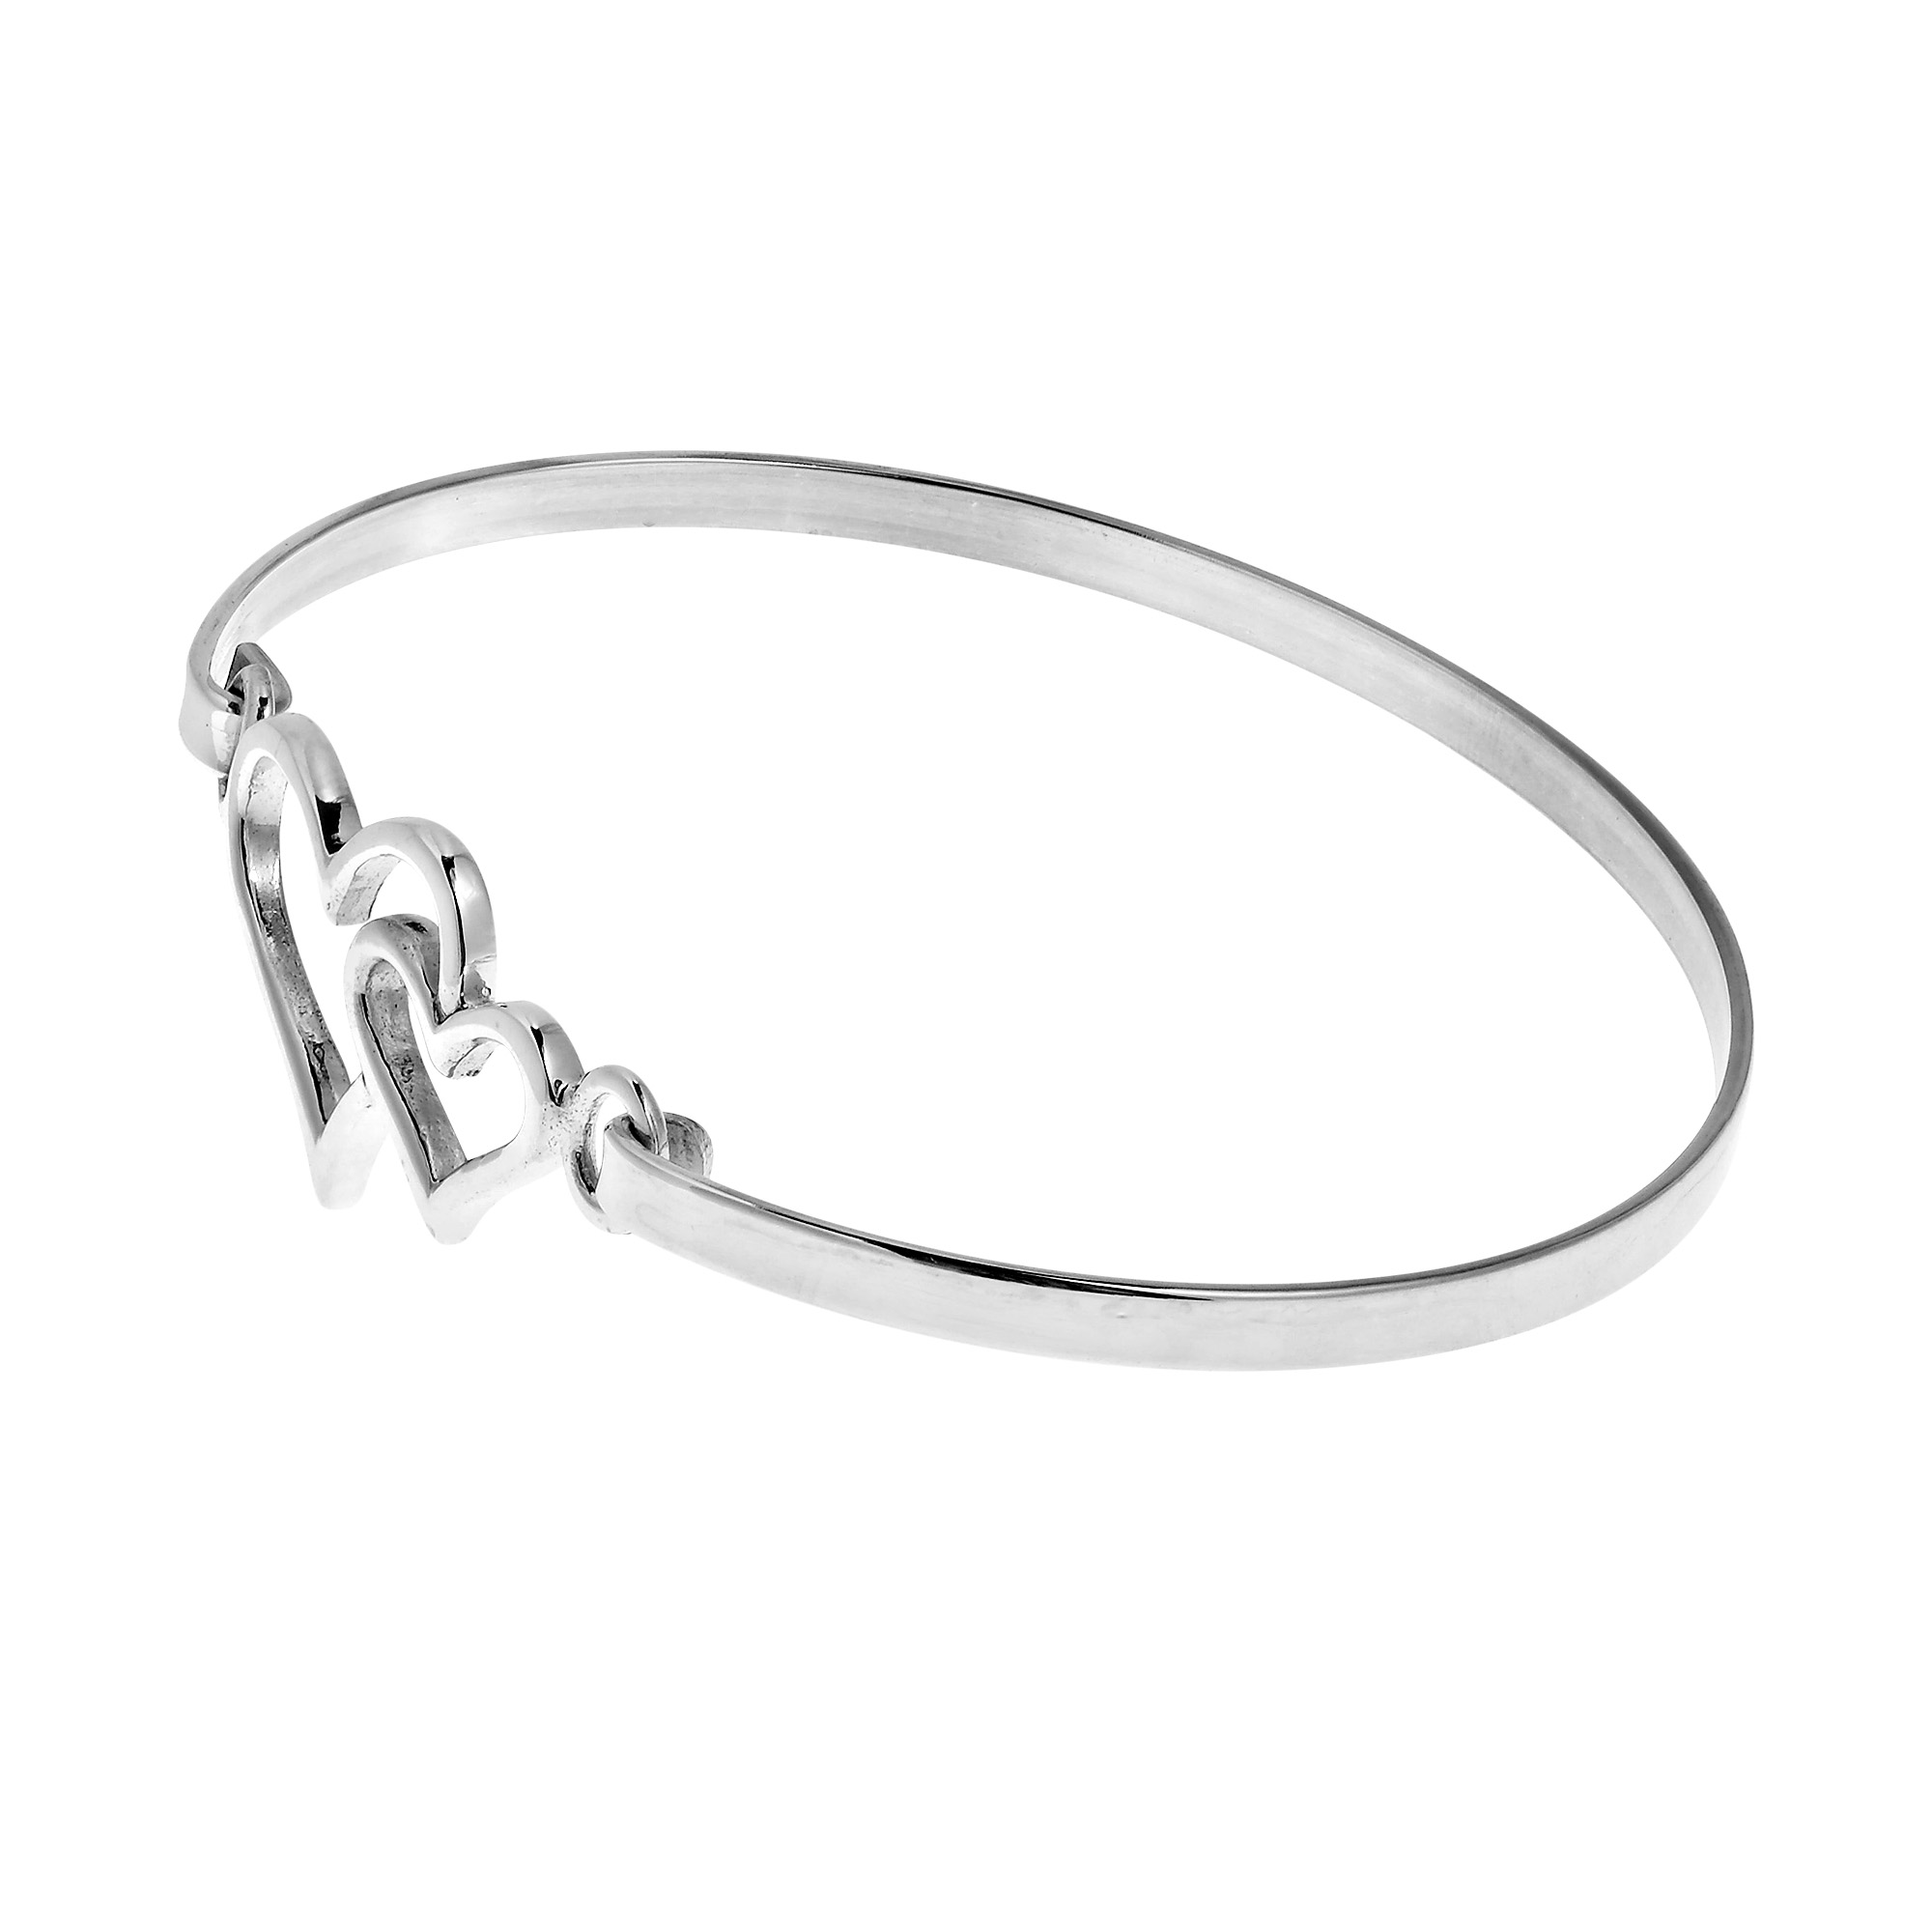 il sterling bracelets bracelet silver p plain fullxfull chain solid lock with hinged bangle bangles safety